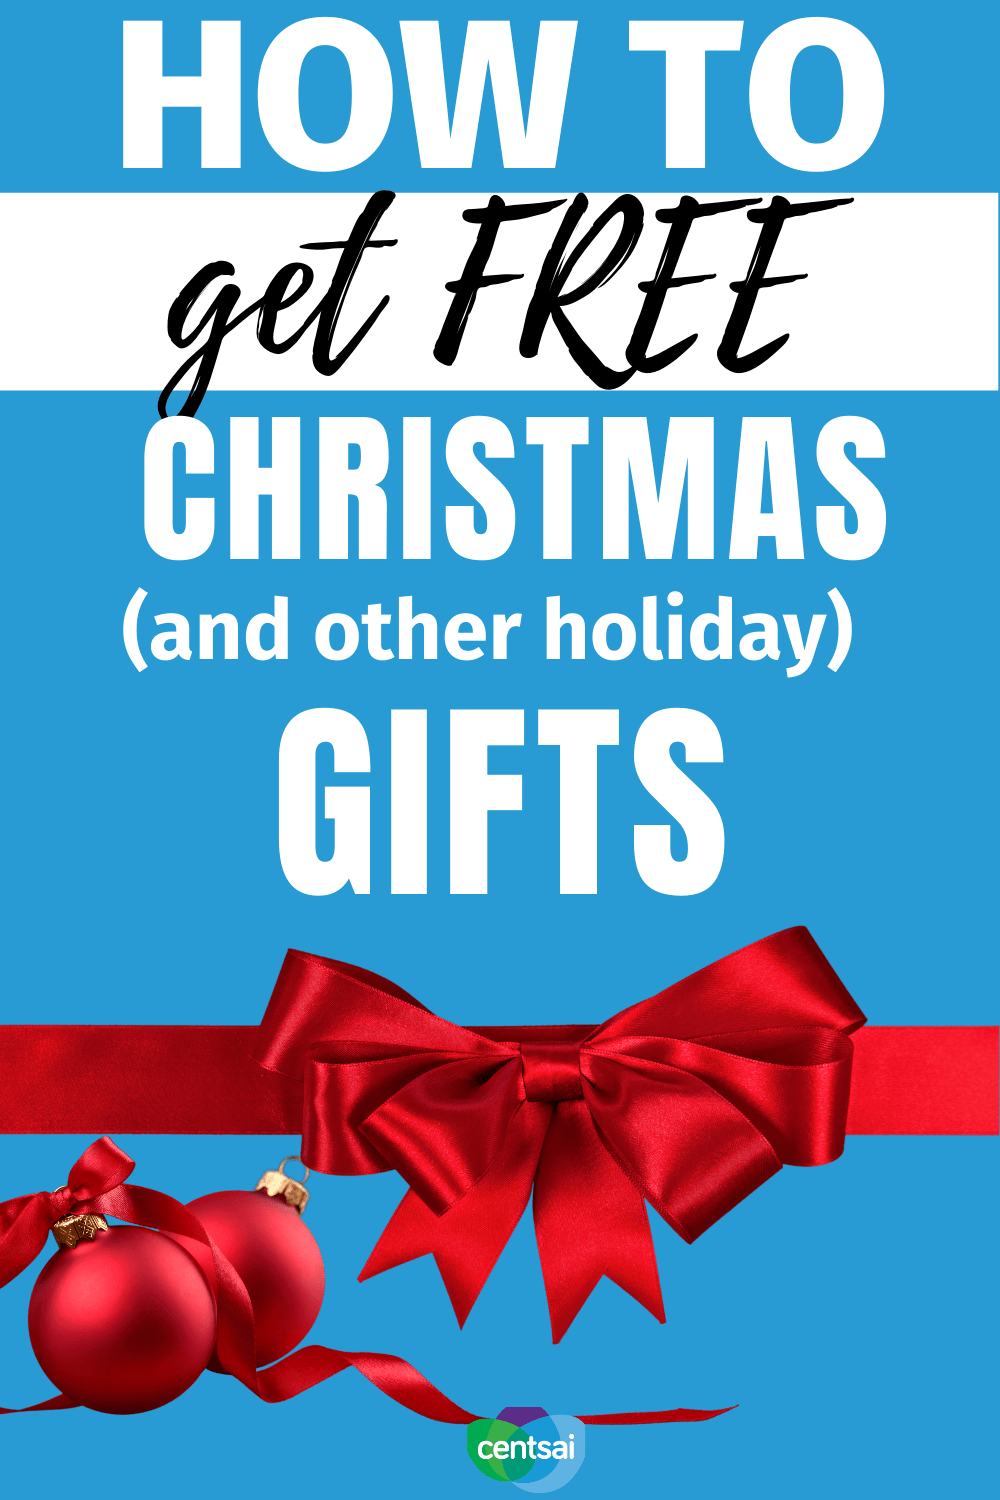 How to Get Free Christmas (and other holiday) Gifts. Does your holiday spending often spiral out of control? Check out these holiday budget tips to help keep more money in your wallet. #CentSai #budget #moneyimindset #holiday #budgetingtips #frugaltips